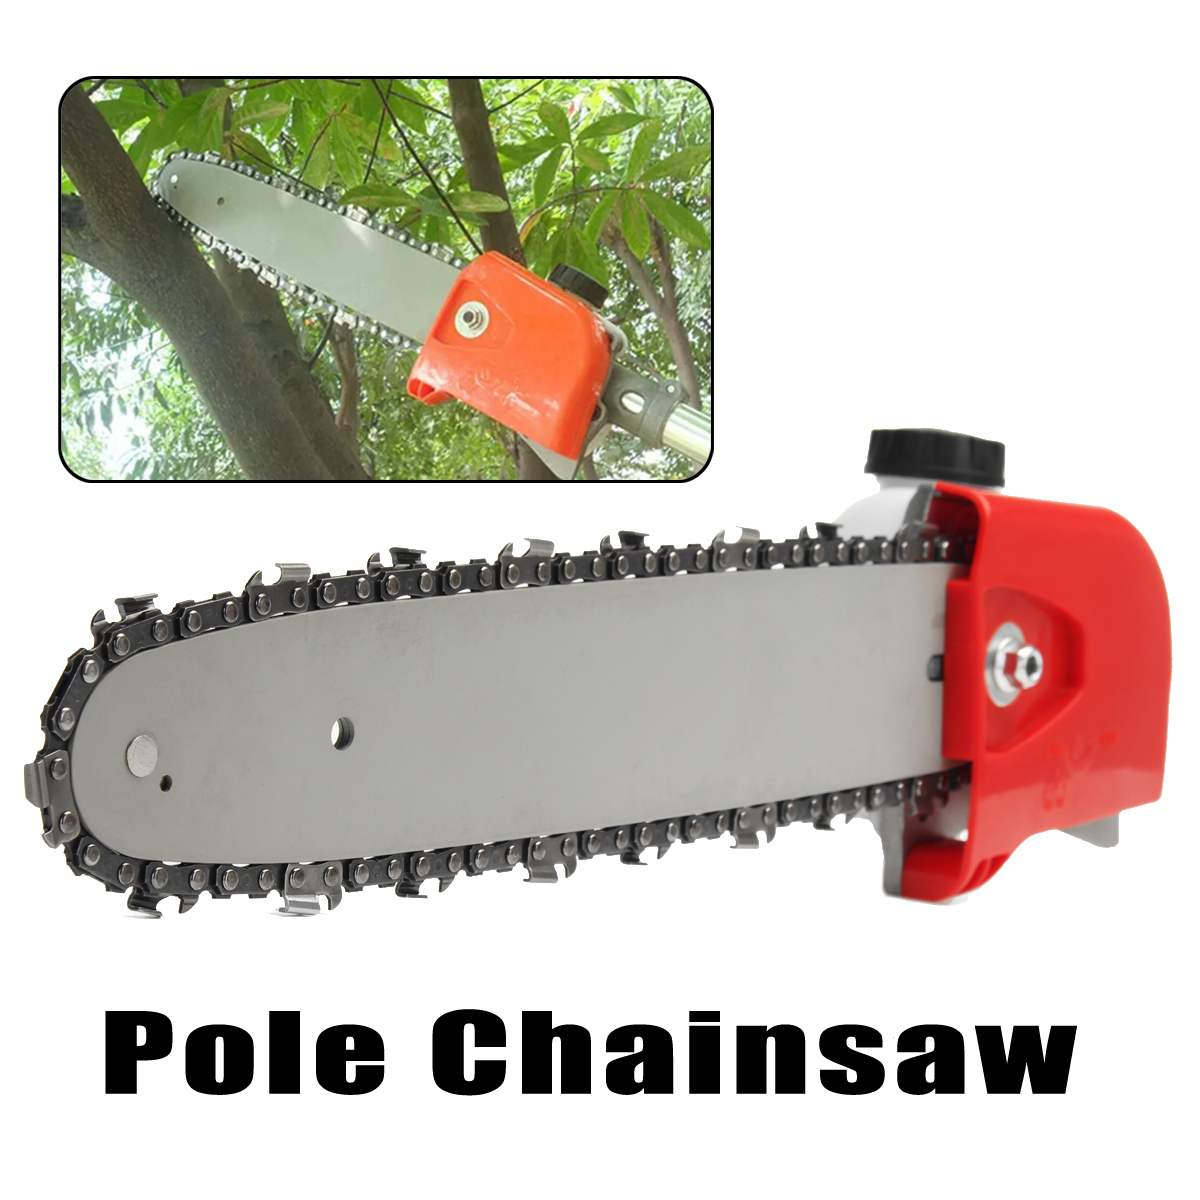 9 Spline Pole Chainsaw Saw Tree Cutter Tree Chainsaw Gearboxs Gear Head Tool +Chain+Guide For Woodworking 26mm